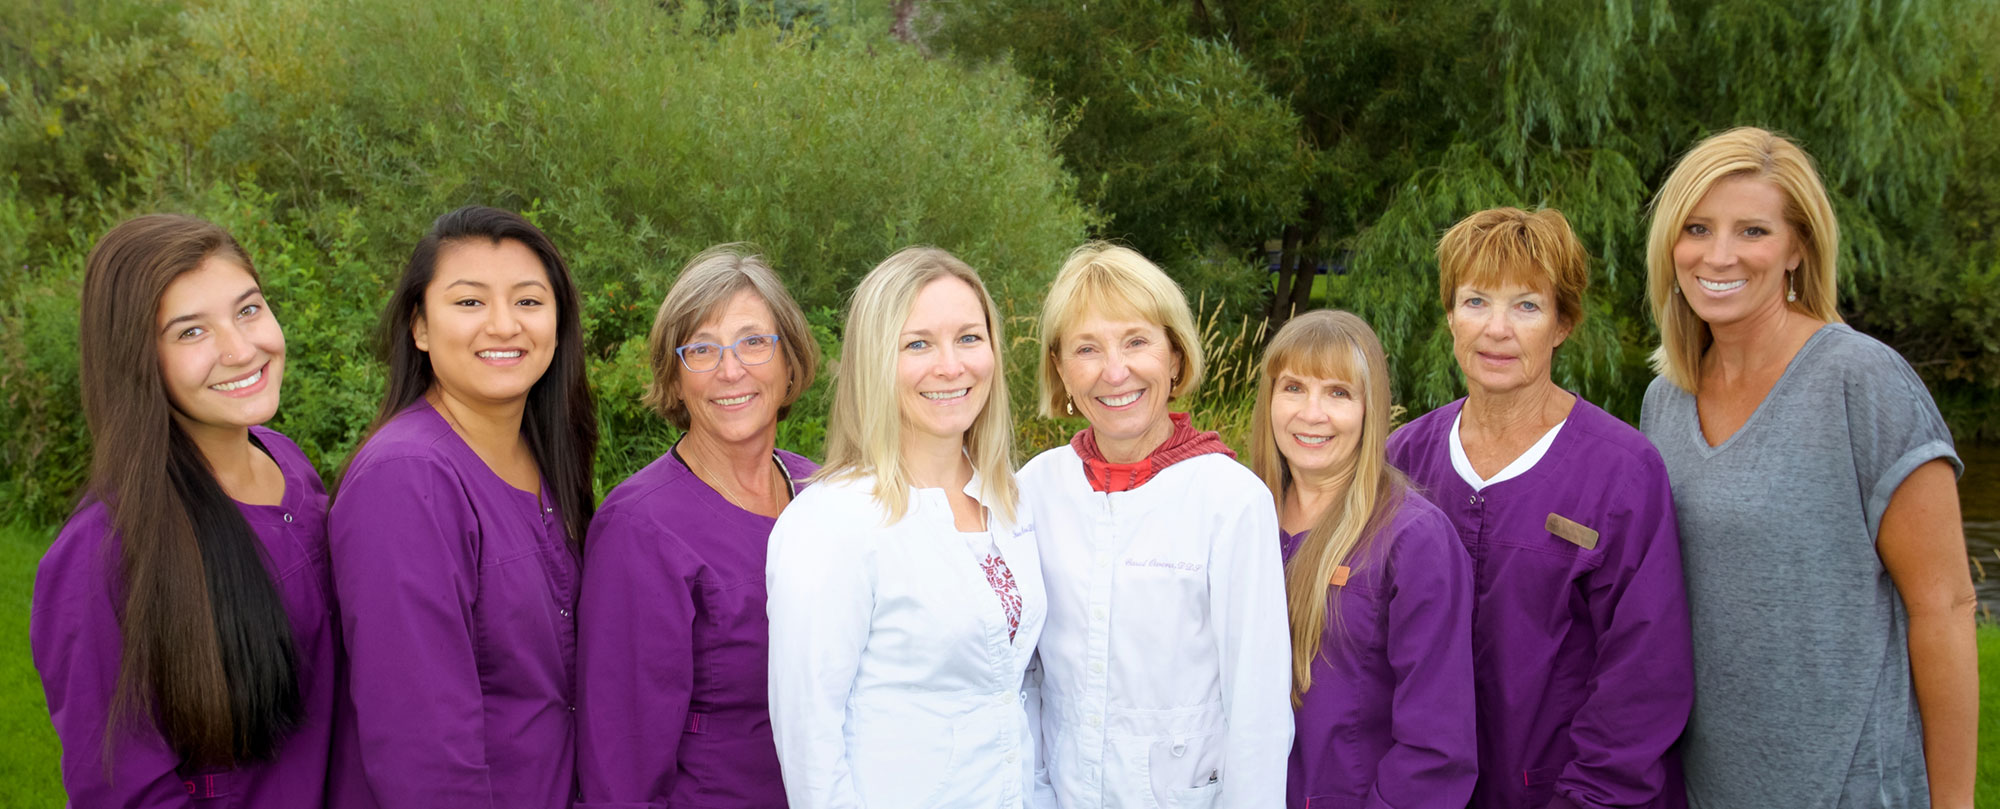 Owens Family Dentistry Staff